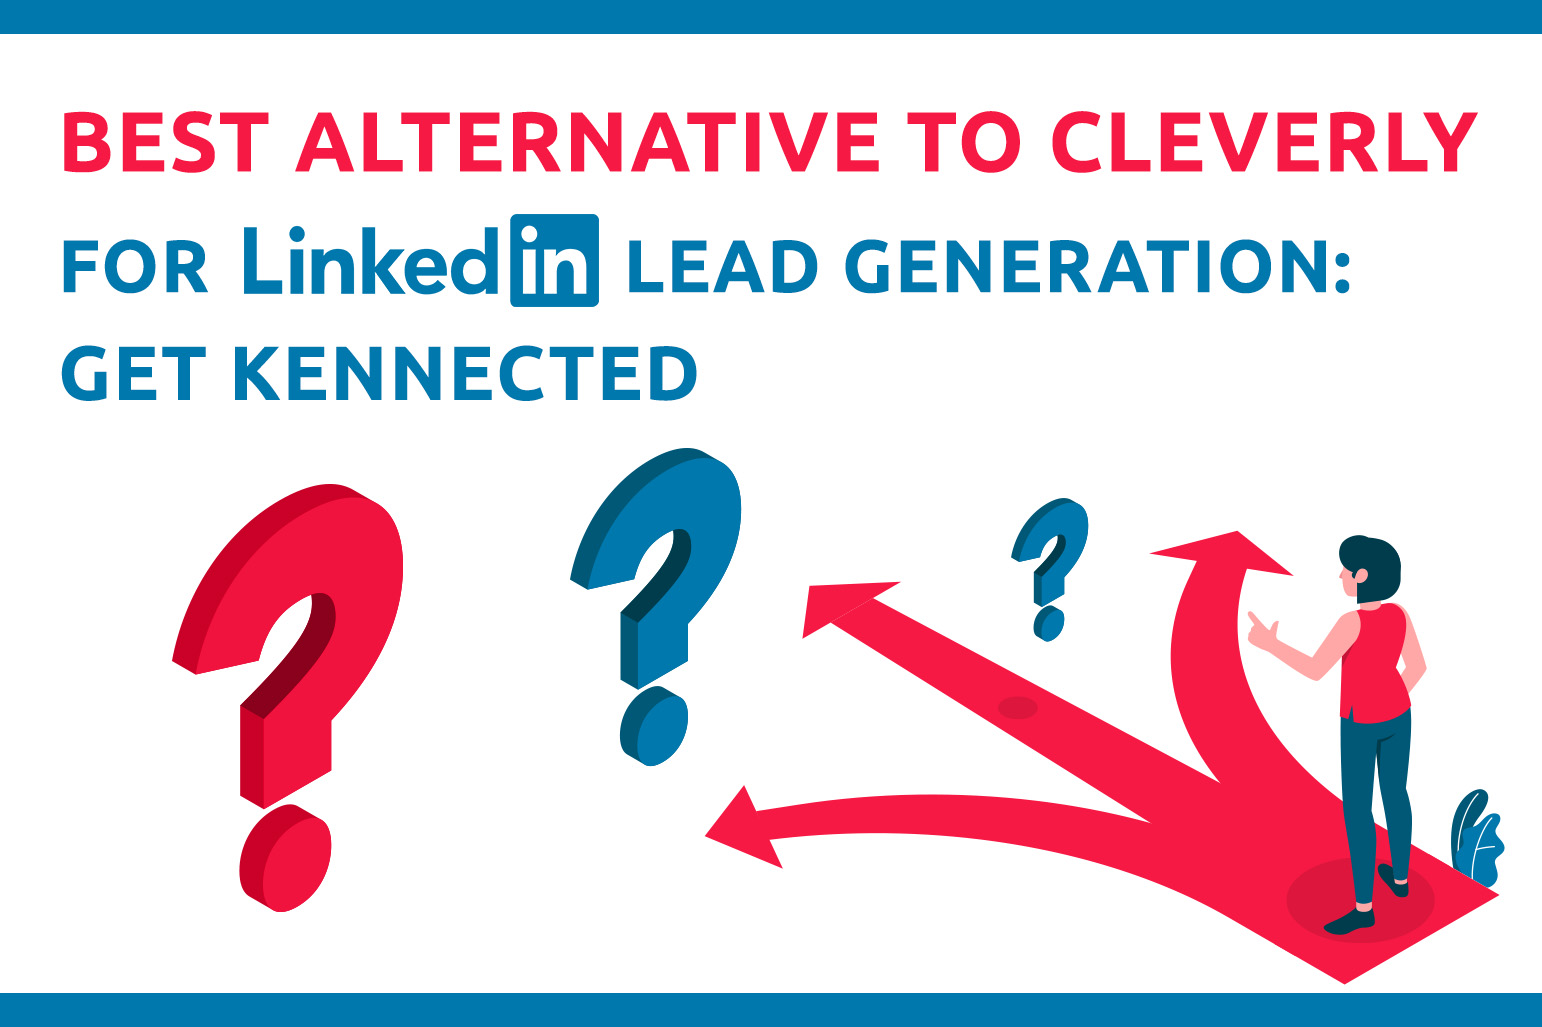 Best Alternative To Cleverly For LinkedIn Lead Generation: Get Kennected